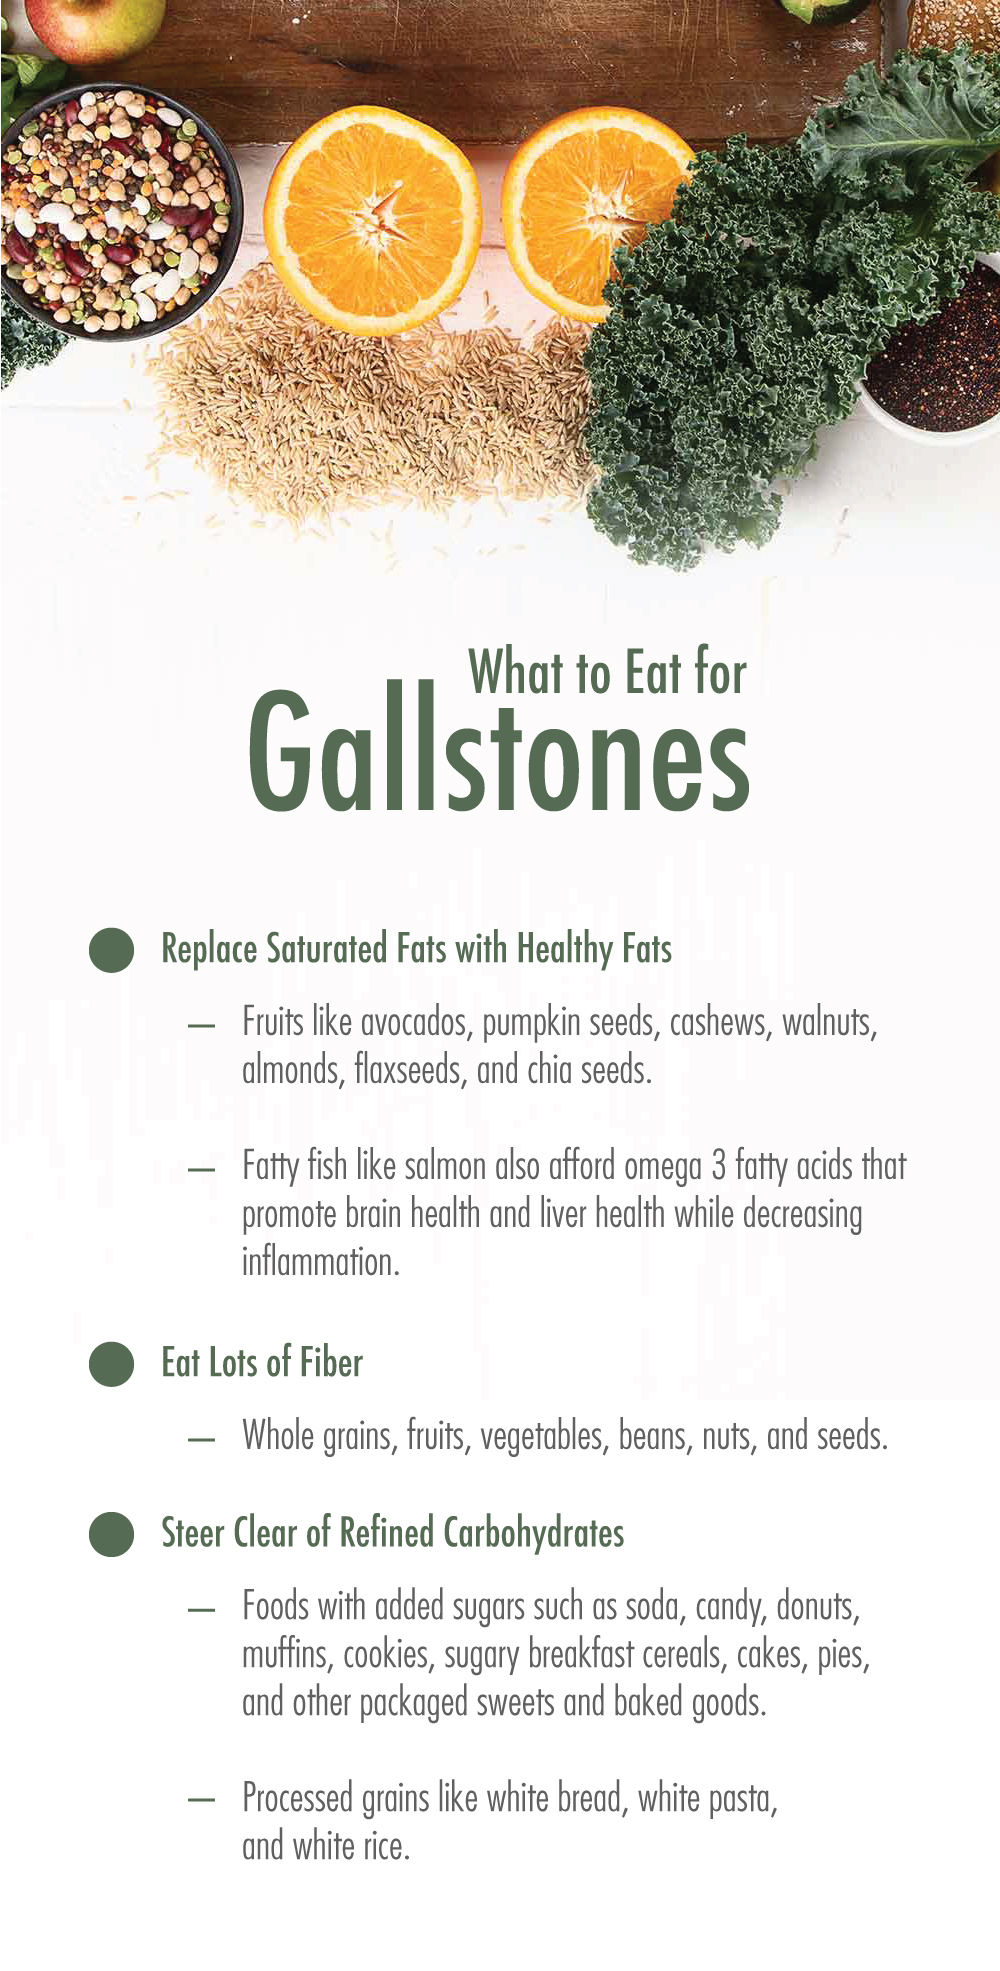 Gallstone Diet: What to Eat for Gallstones